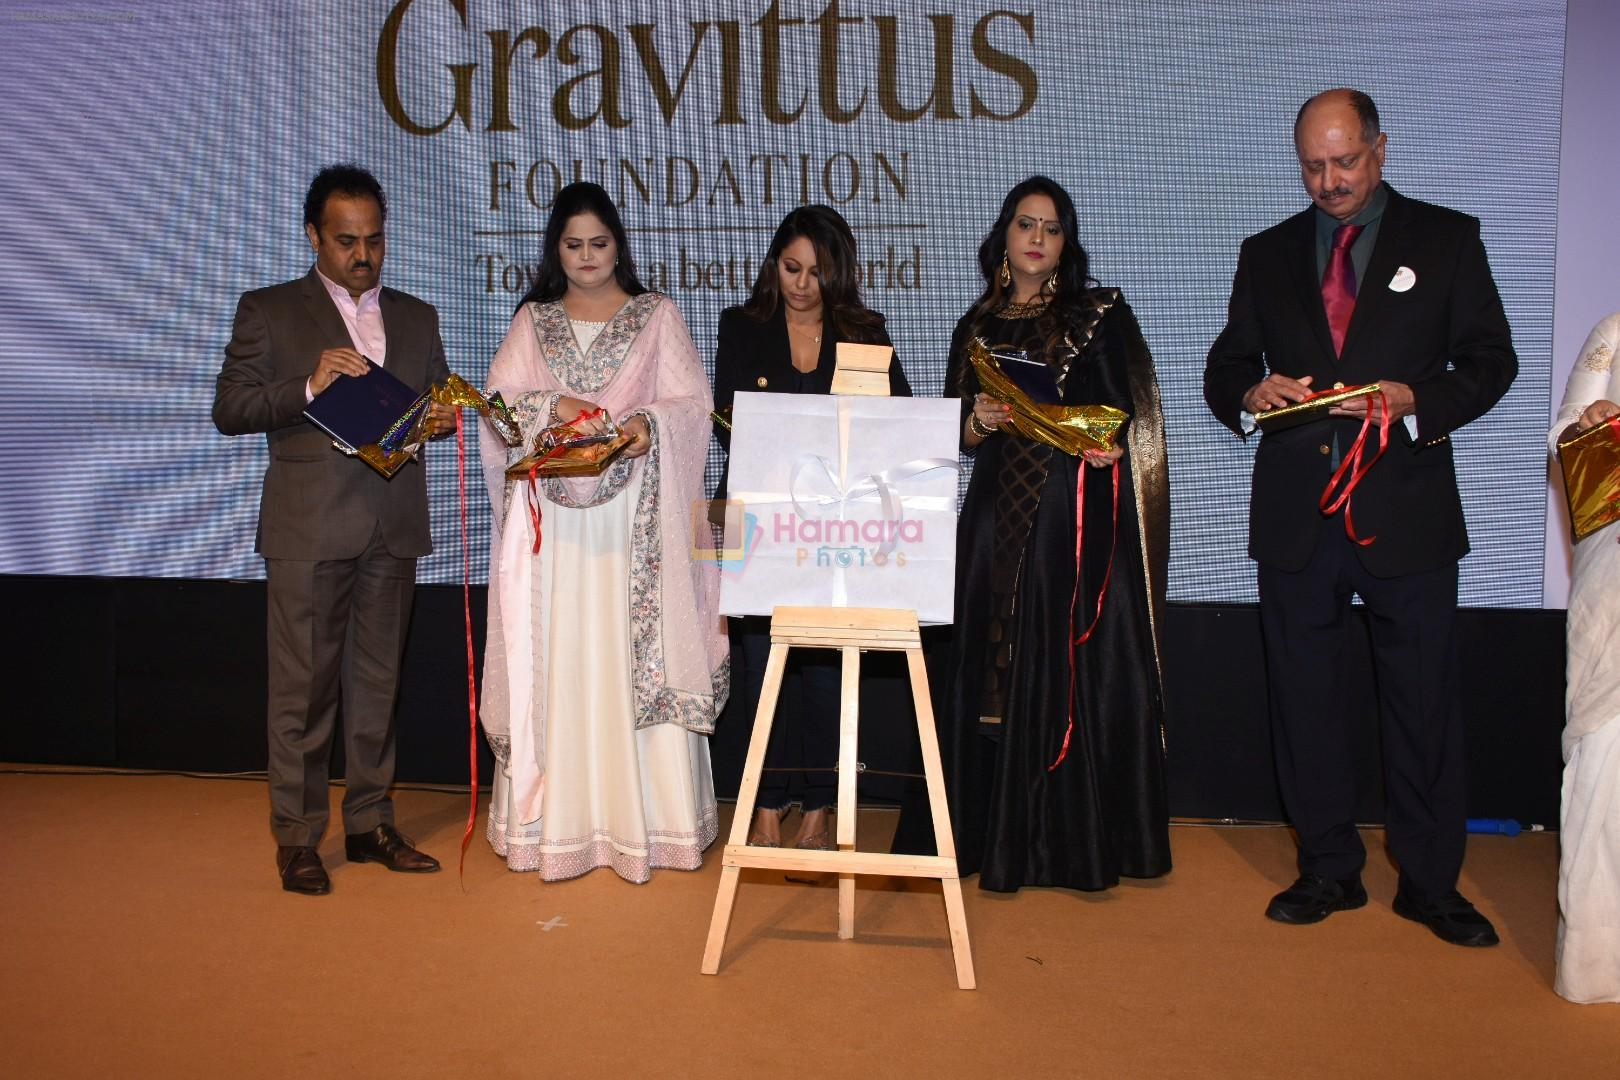 Gauri Khan, Amruta Fadnavis launch Usha Kakade's book Gravittus Ratna in pune on 3rd July 2019